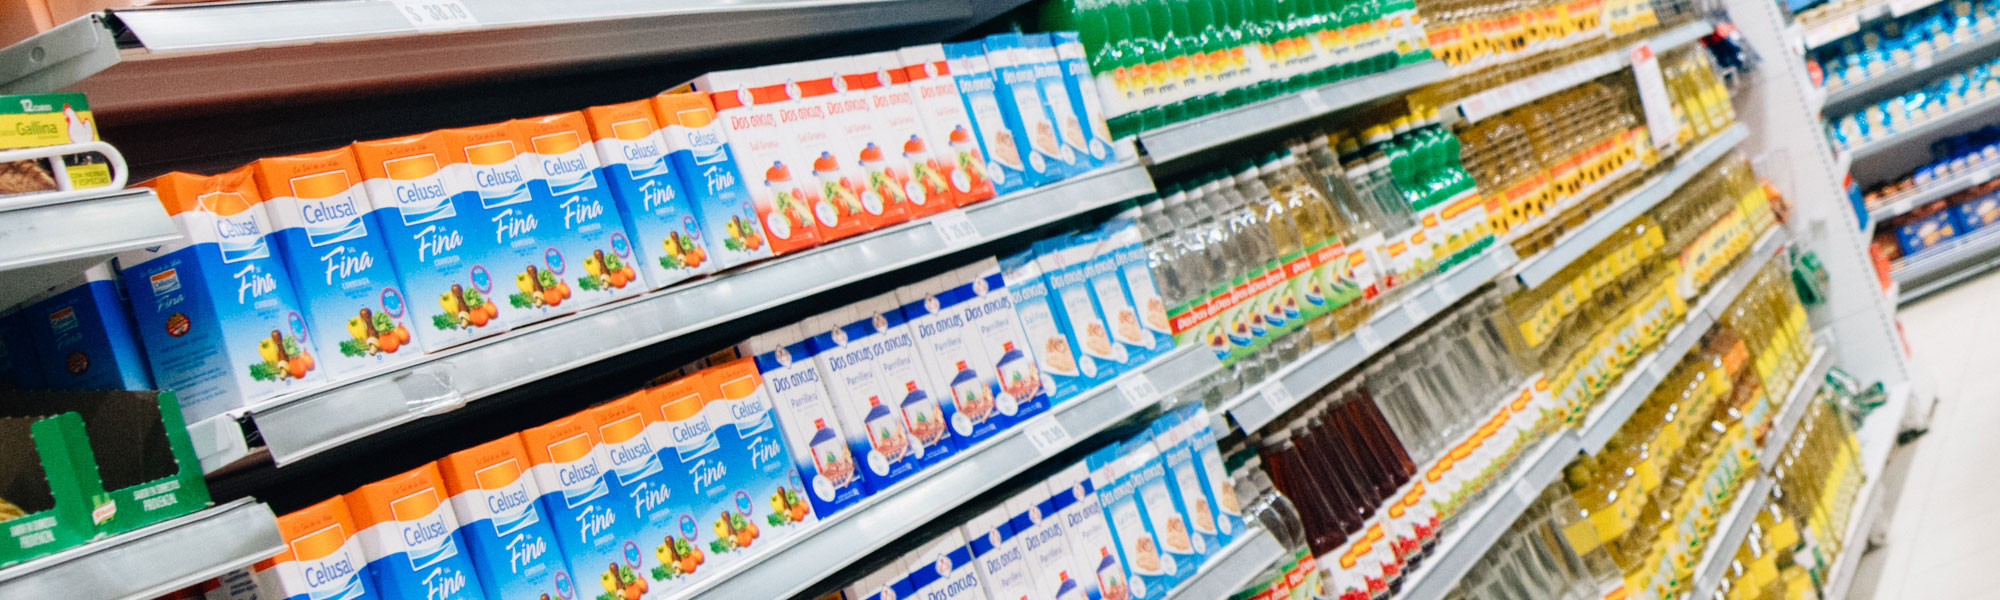 Successful Category Management